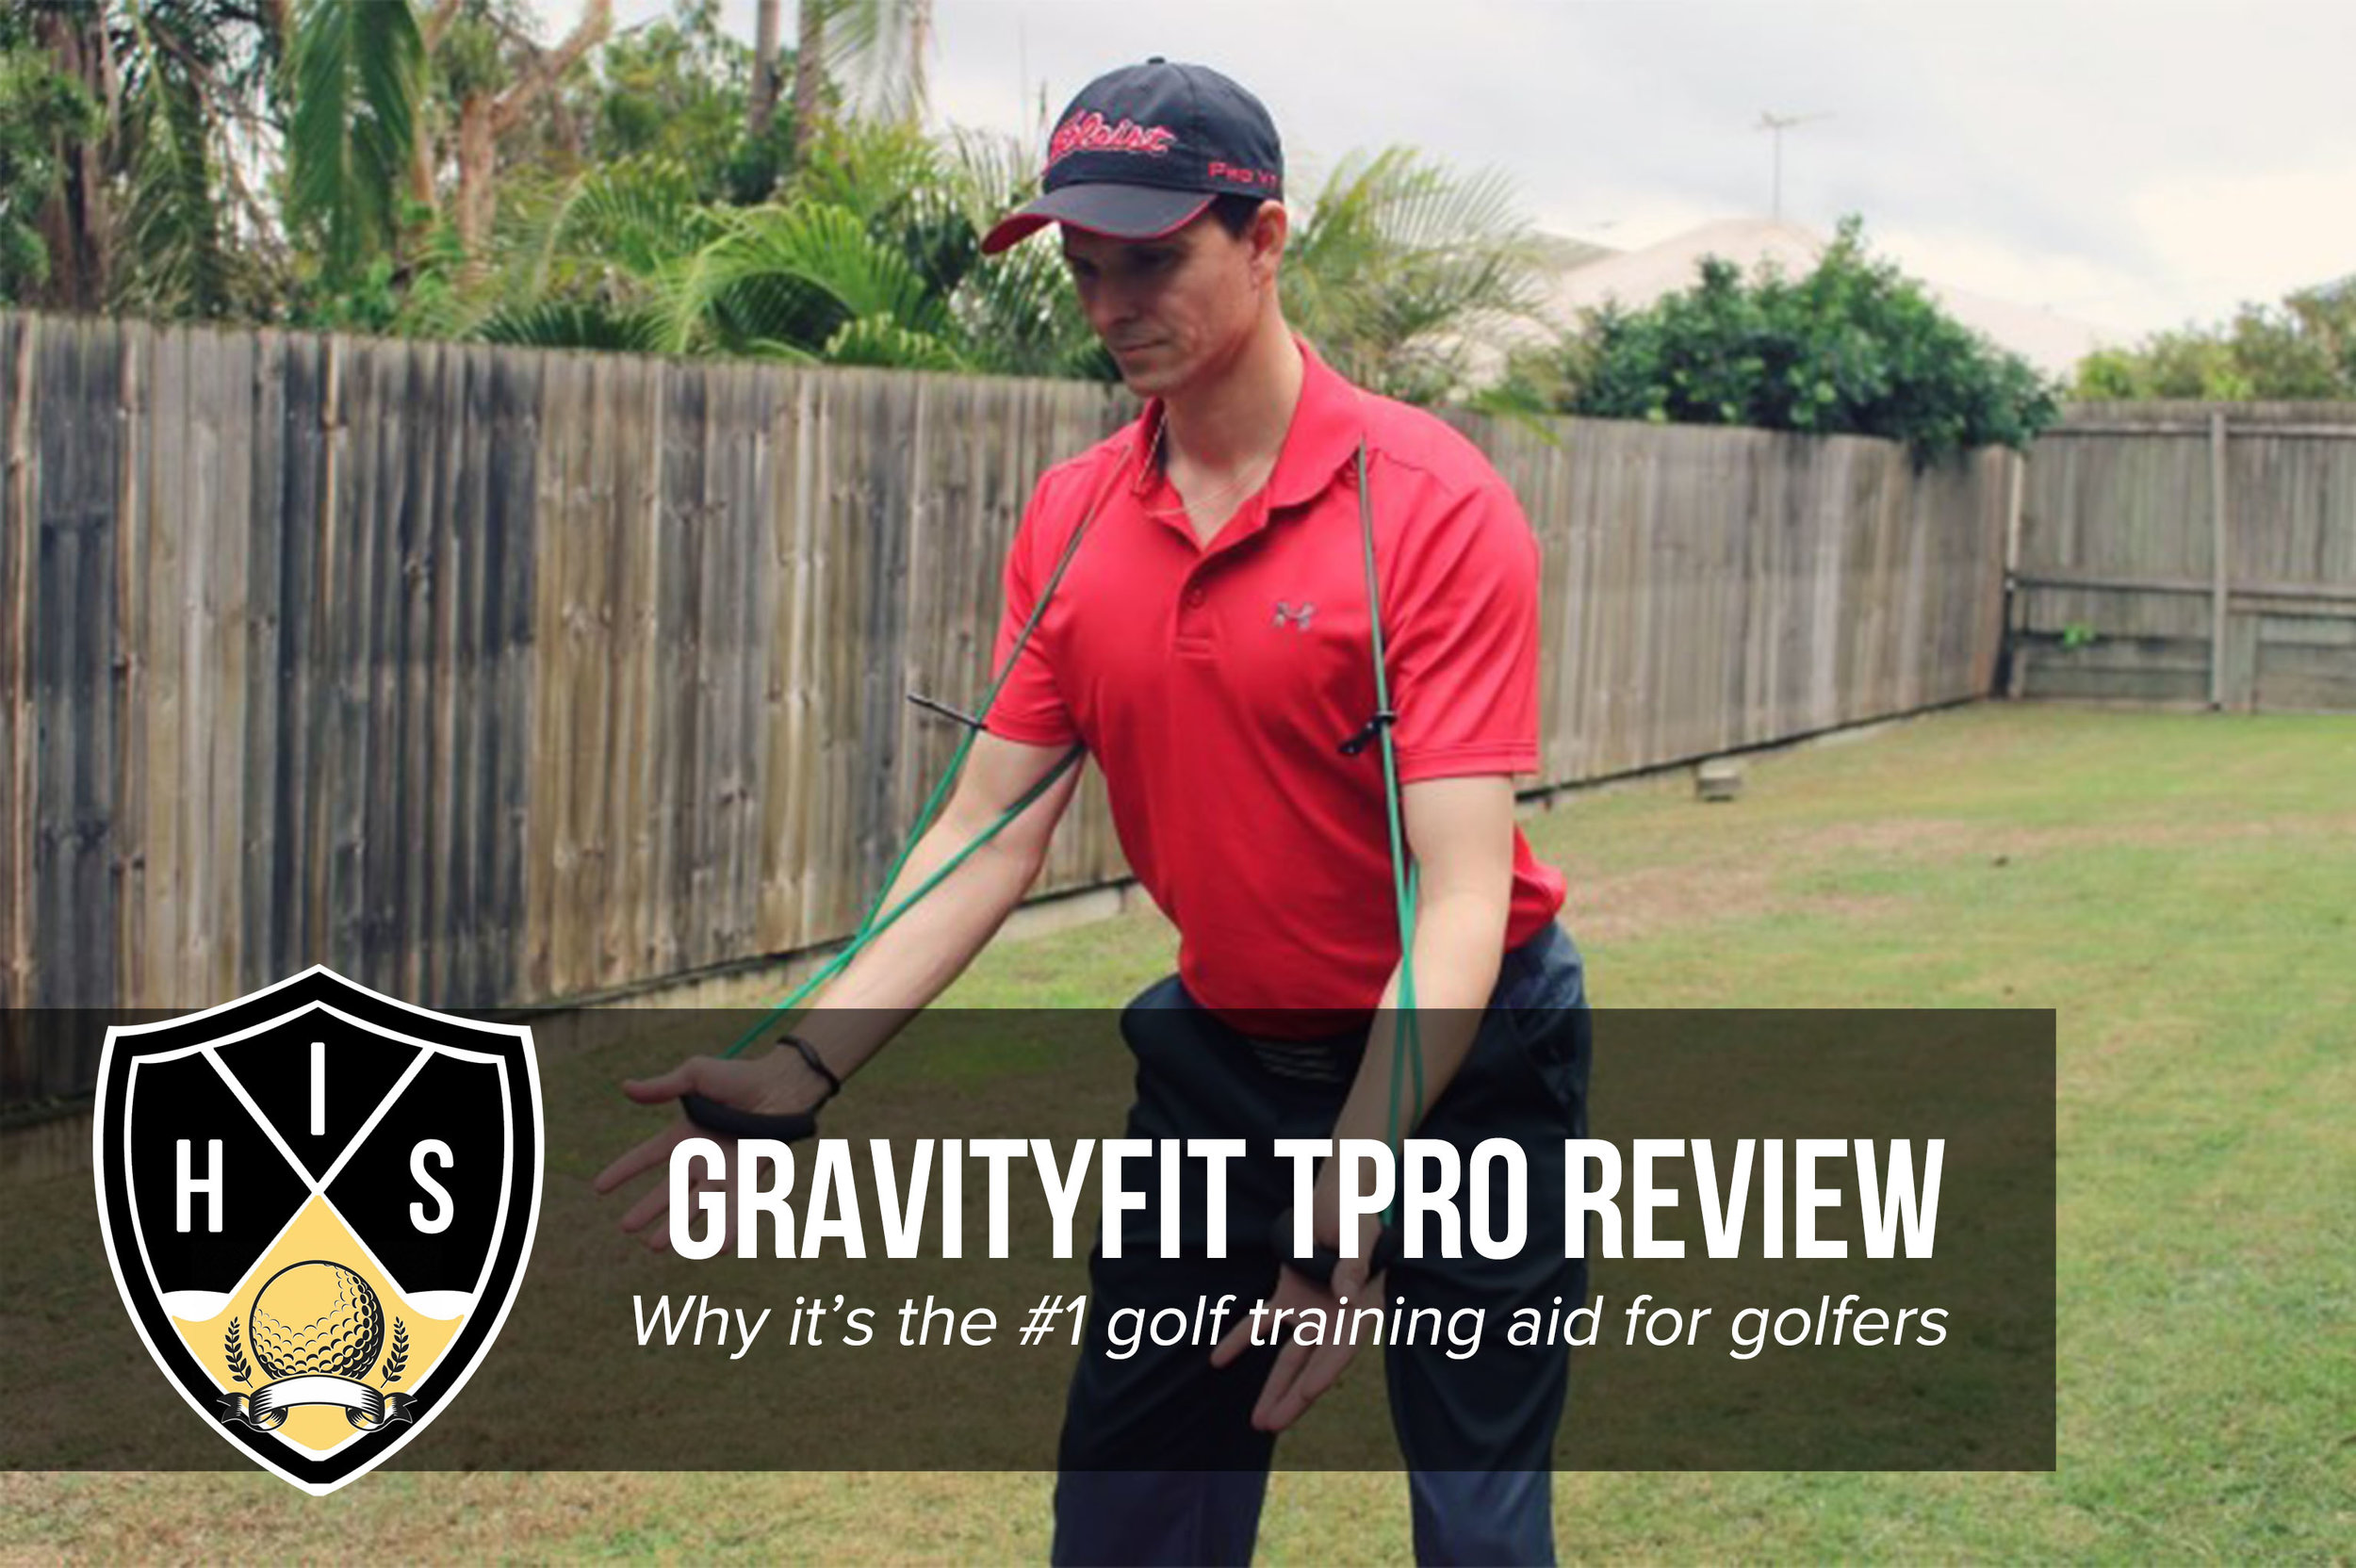 Learn in this GravityFit TPro review how this powerful golf training aid can improve your golf swing through correct posture and body feels in the golf swing